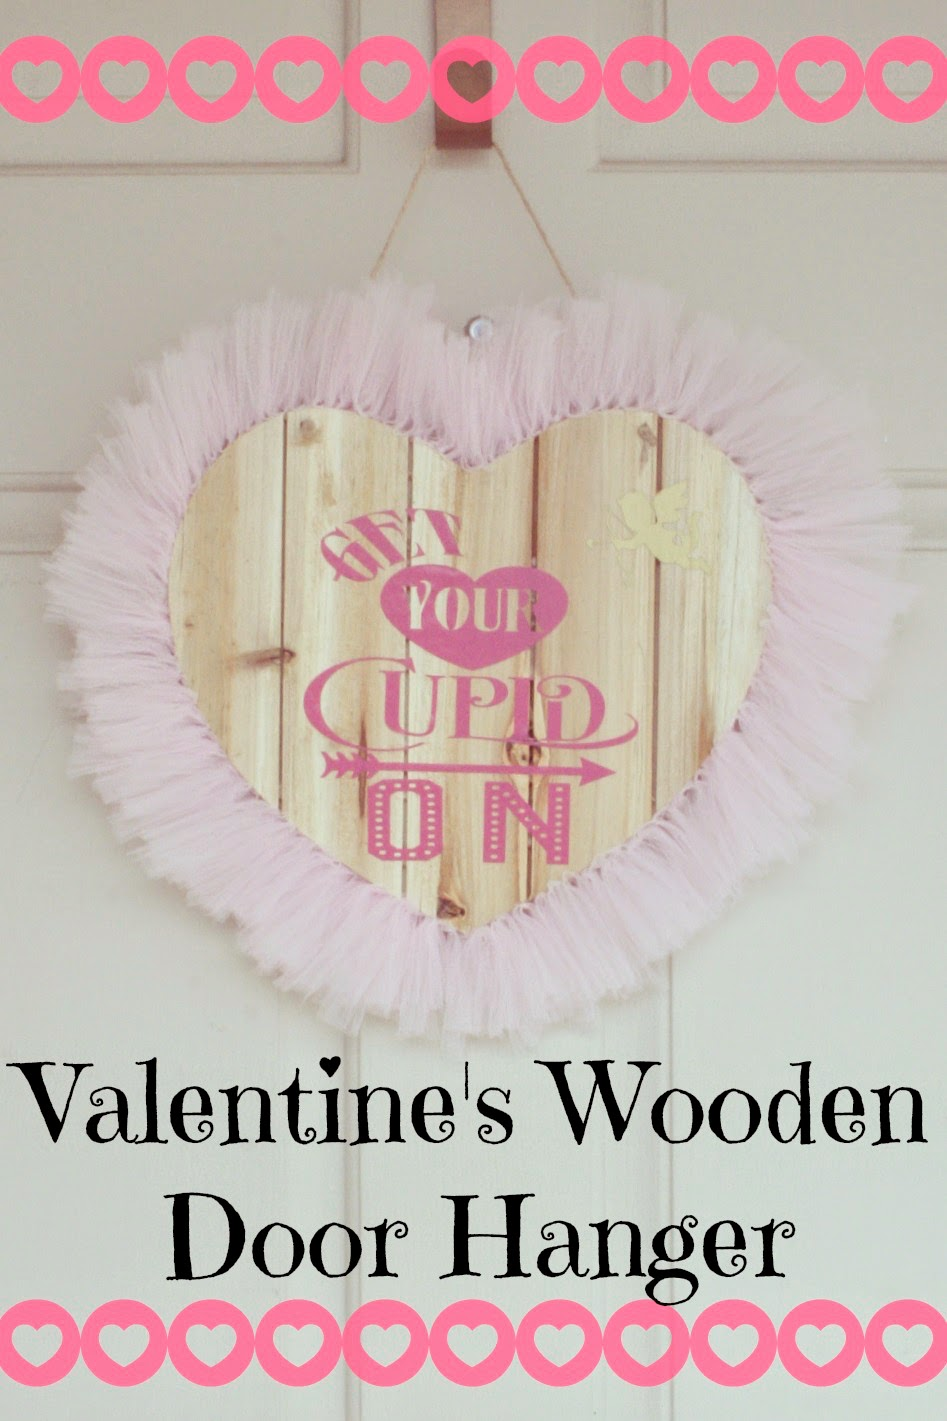 Valentines door hangers, wooden heart door hangers, silhouette vinyl on wood, Silhouette wreath, tutu door hanger.